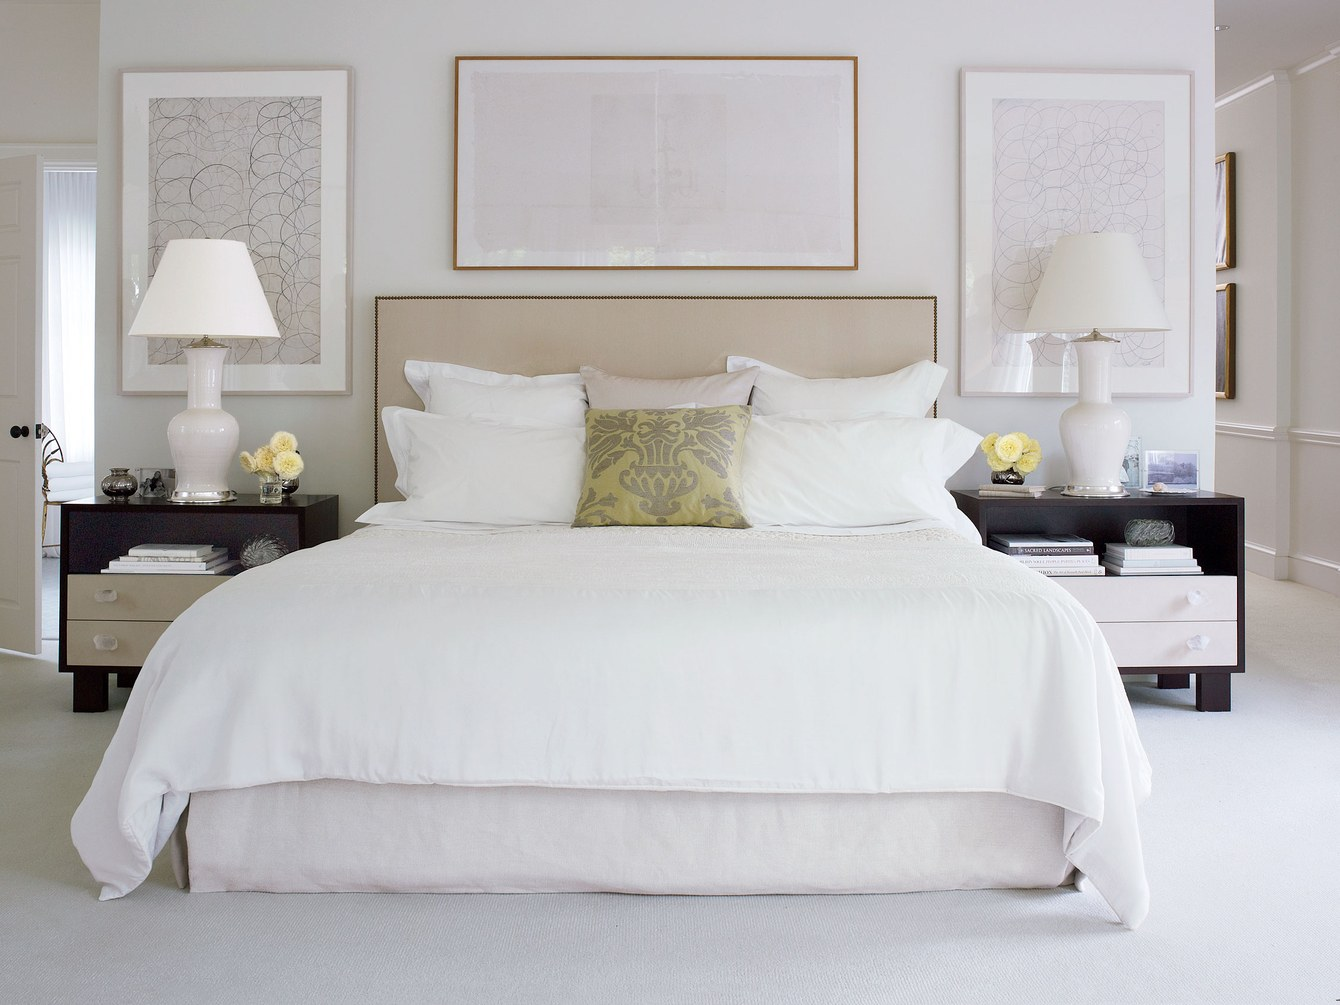 4 Secrets to Perfect White Bed Linens | HuffPost Life on 2016 master bathroom, 2016 kitchen decorating ideas, 2016 master bedroom design,